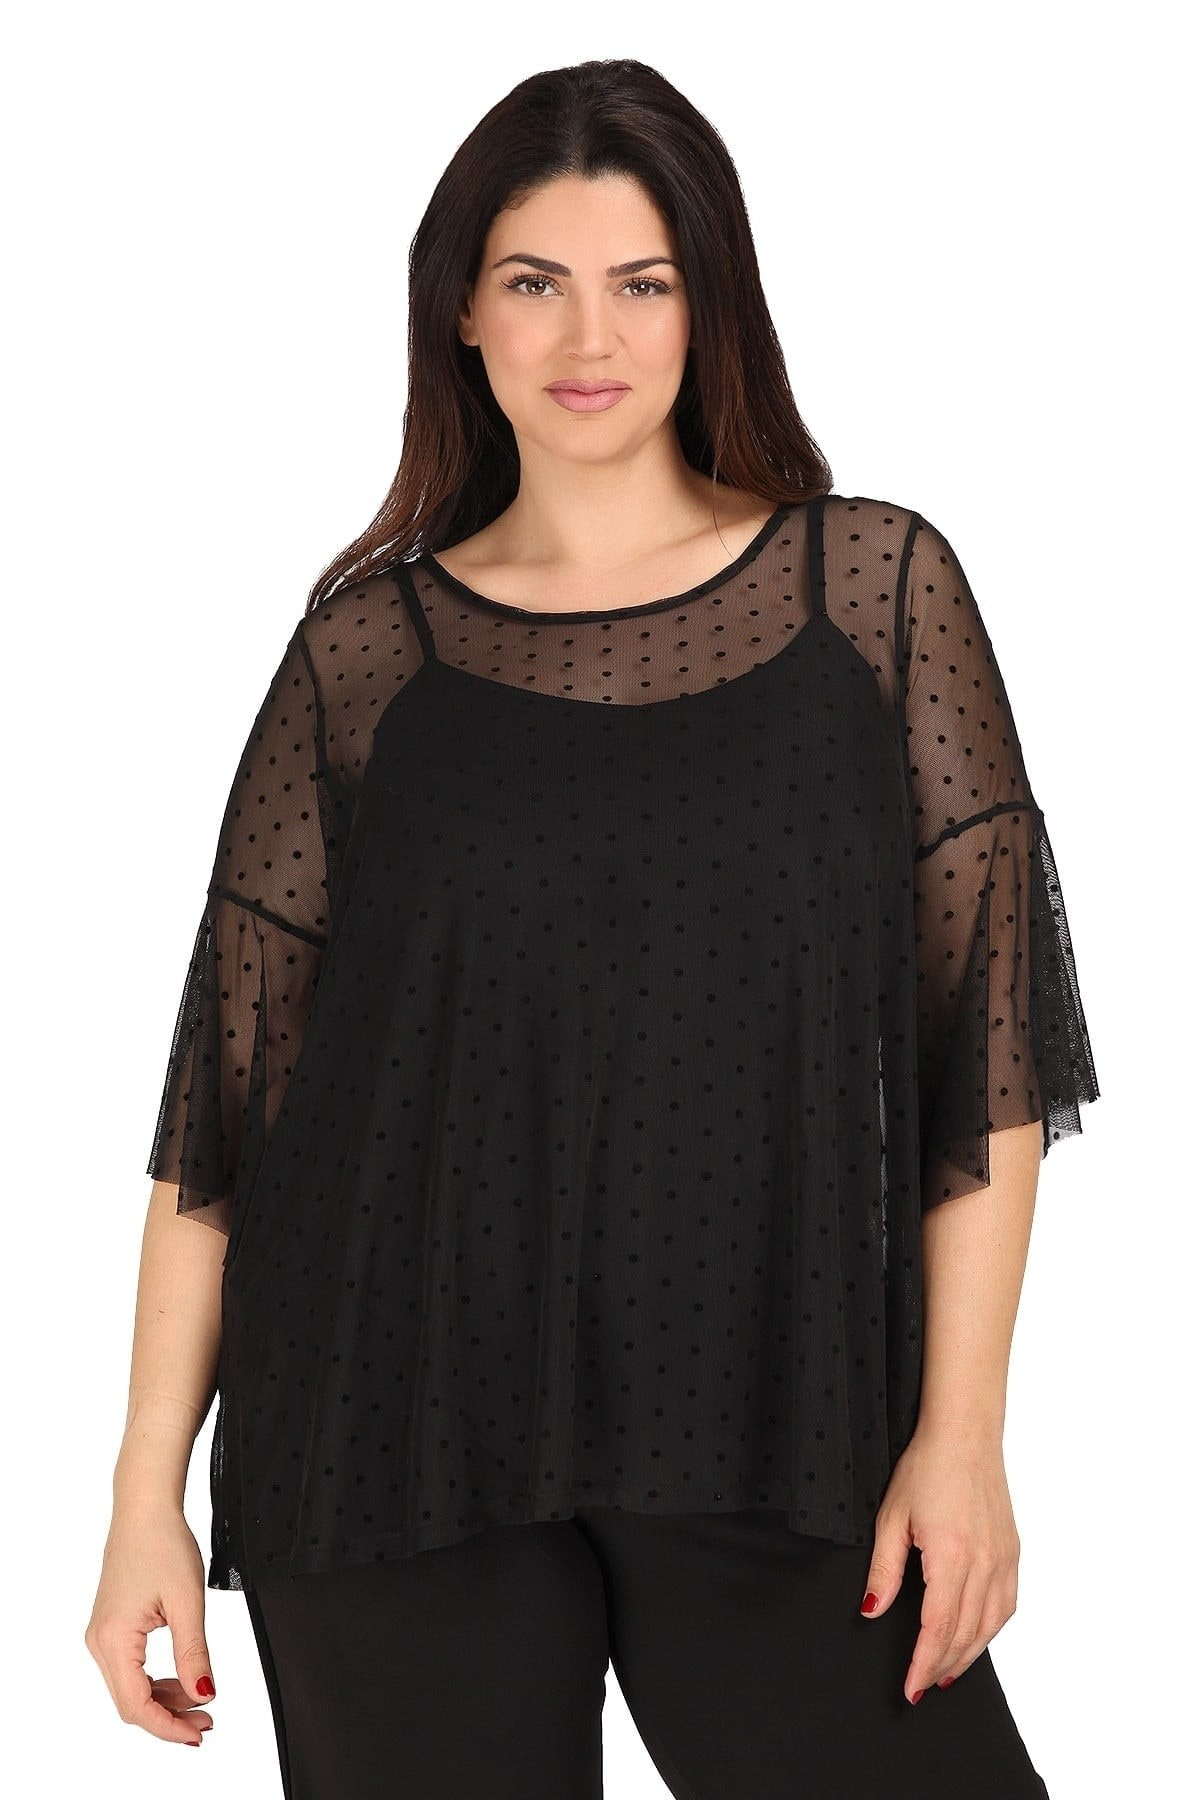 Blouse with sheer spotted overlay